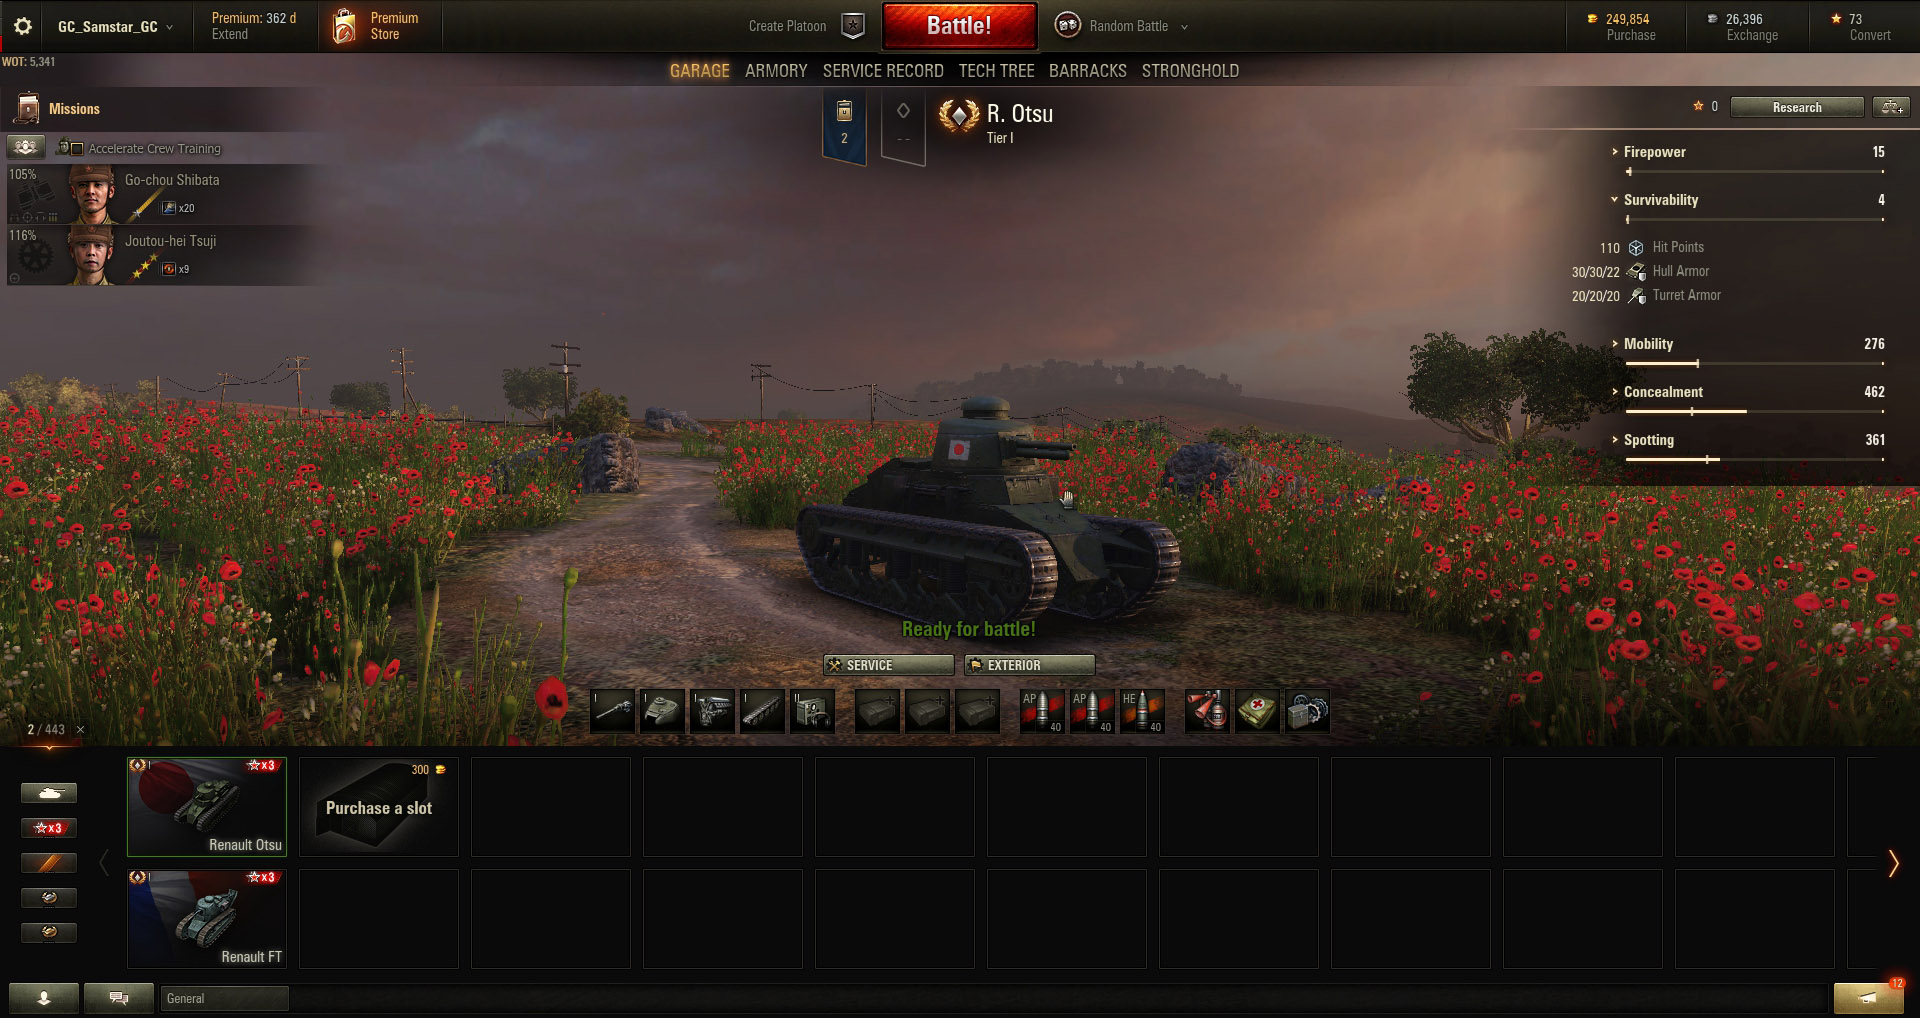 The Renault Otsu, while not as revolutionary as the FT, packs a mean punch in World of Tanks